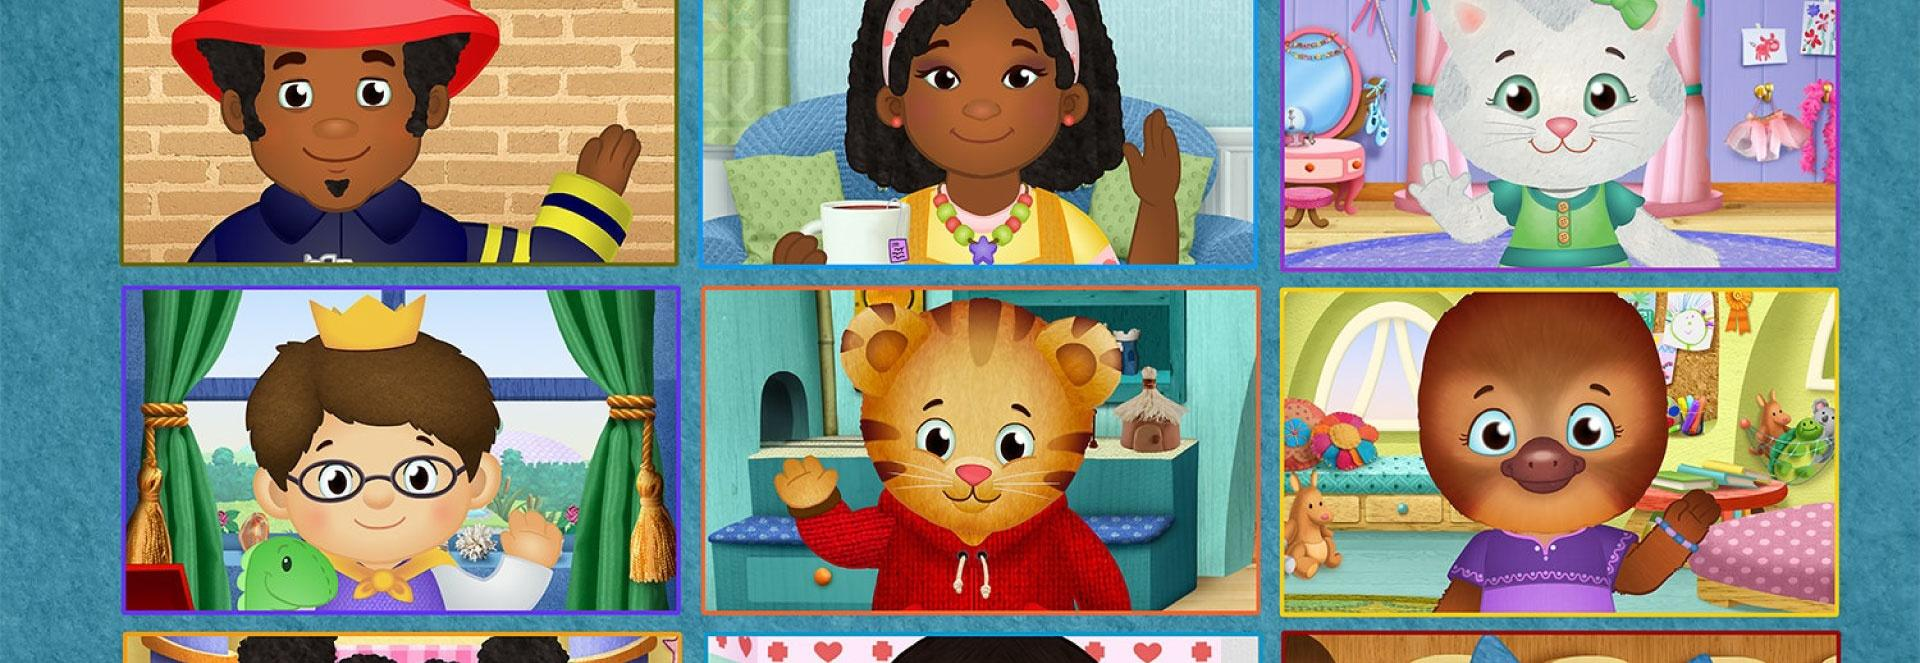 A video call-style mosaic image of characters from Daniel Tiger's Neighborhood waiving at the camera.